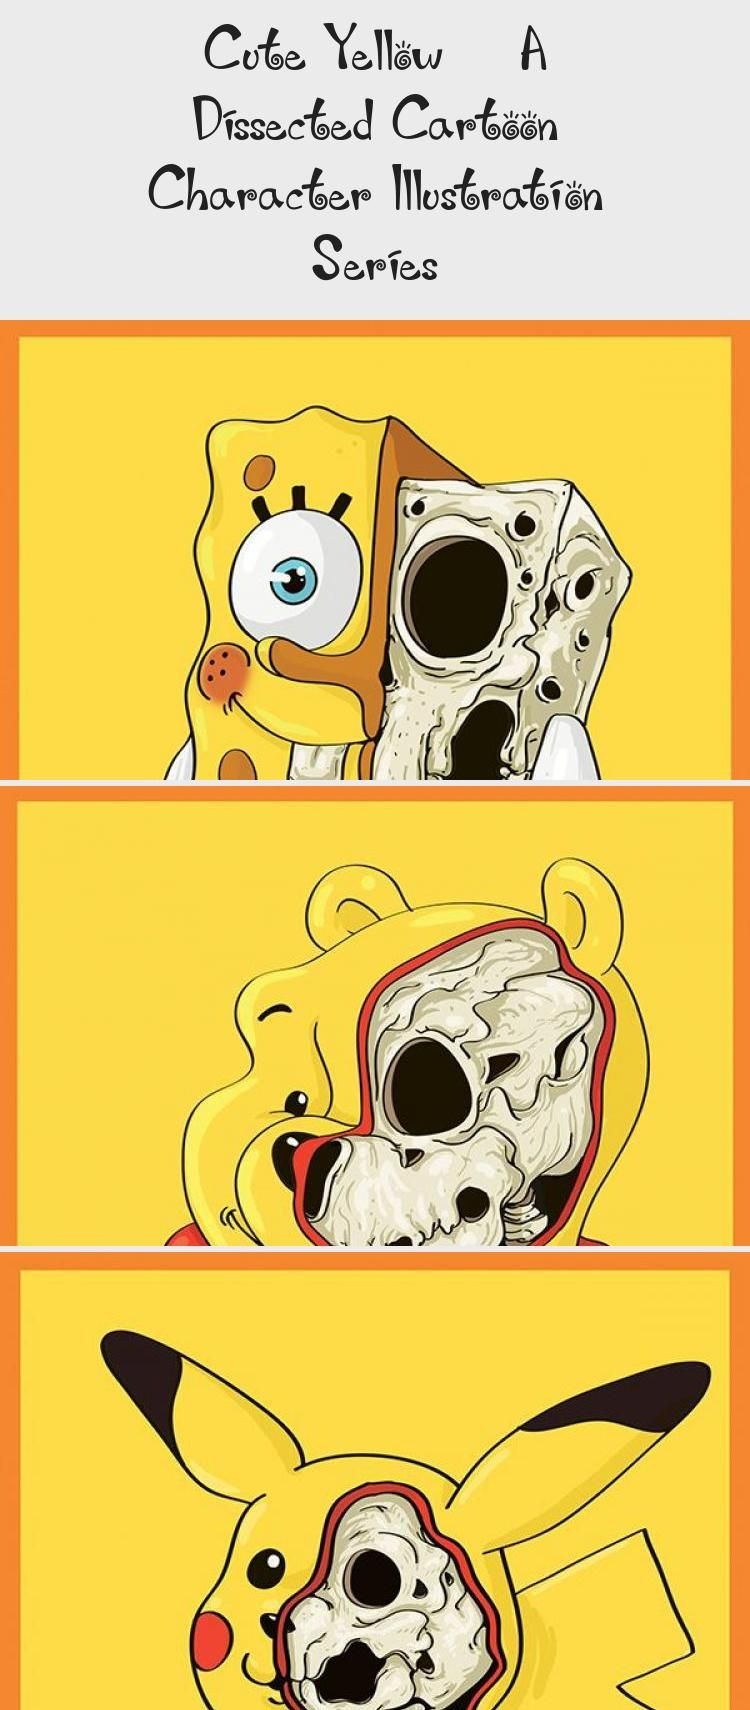 Cute Yellow 8211 A Dissected Cartoon Character Illustration Series Character Illustration Favorite Cartoon Character Cartoon Art Styles